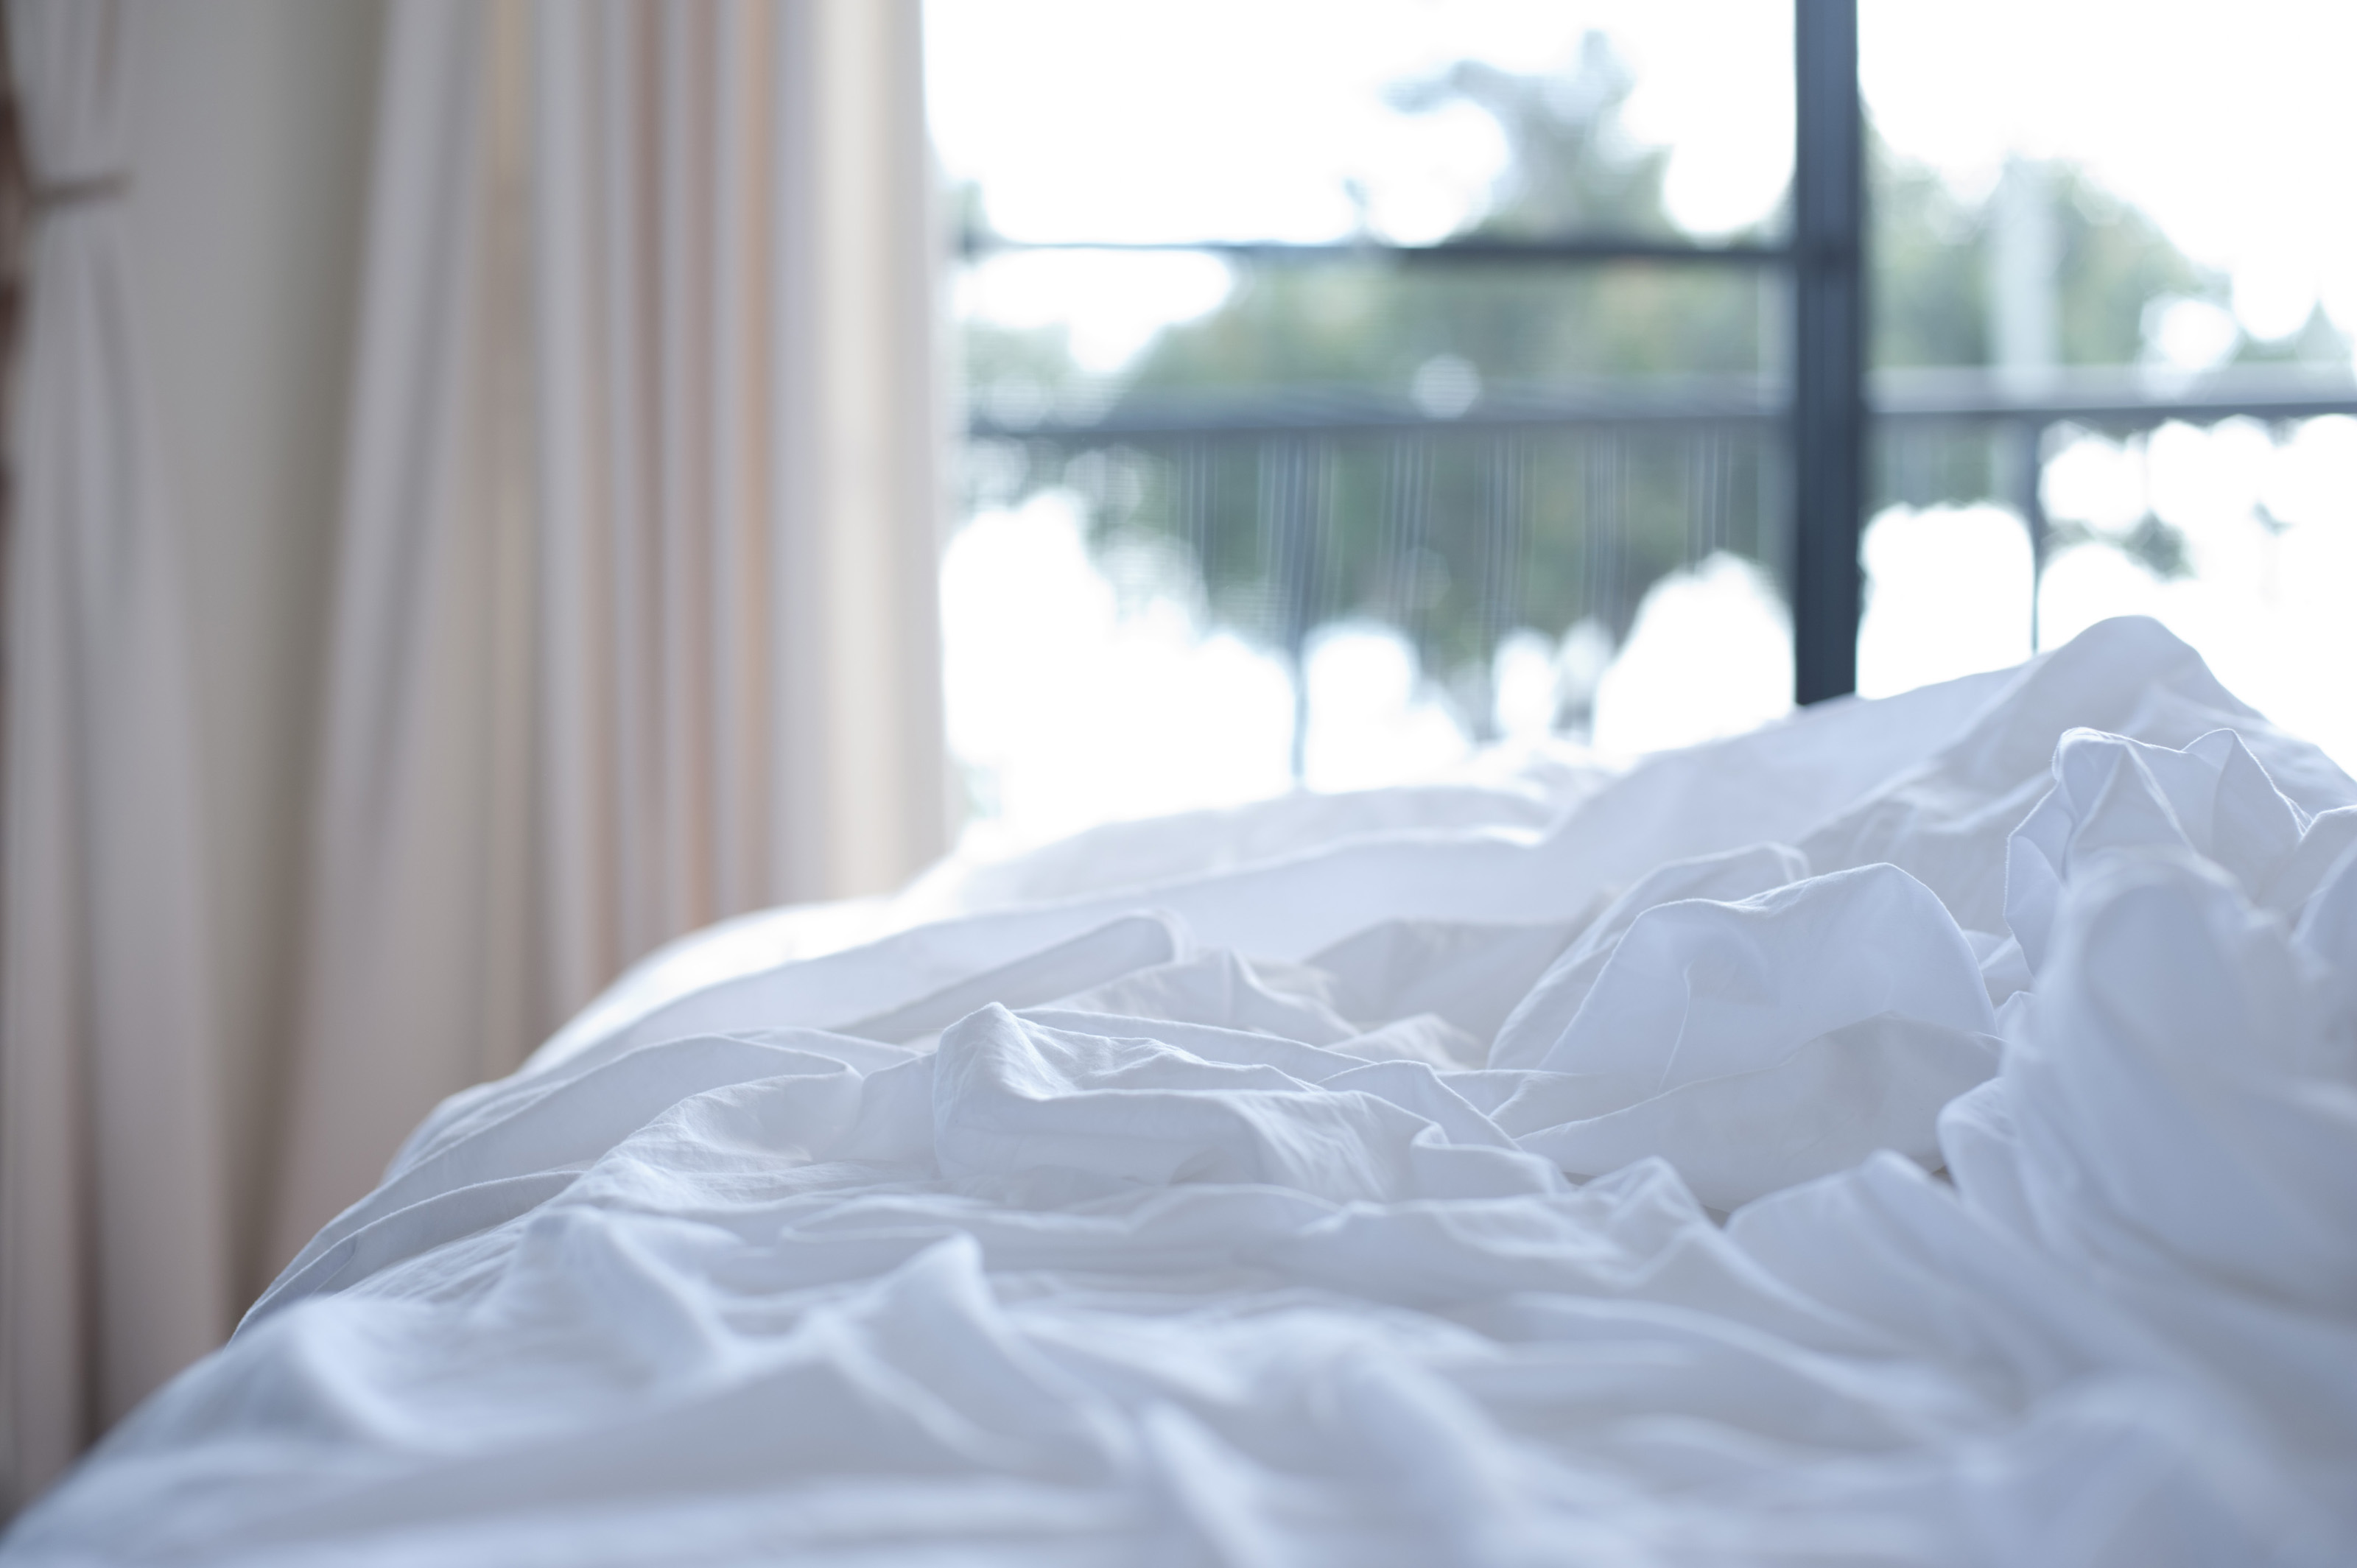 Free Stock Photo 8915 Unmade Bed Freeimageslive